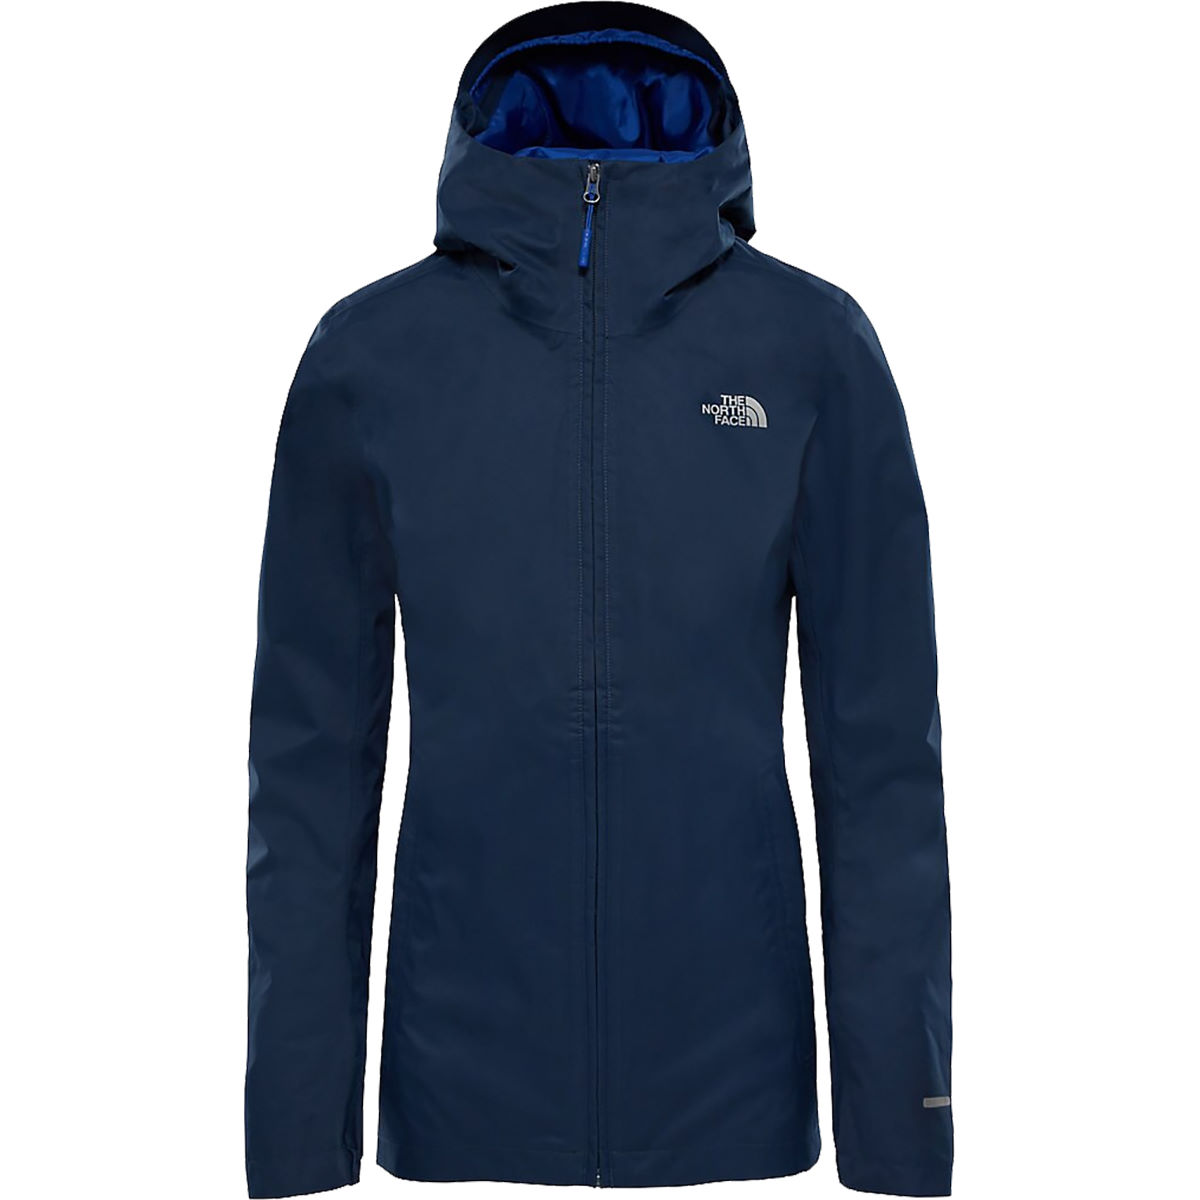 The North Face The North Face Tanken Zip-In Jacket   Jackets